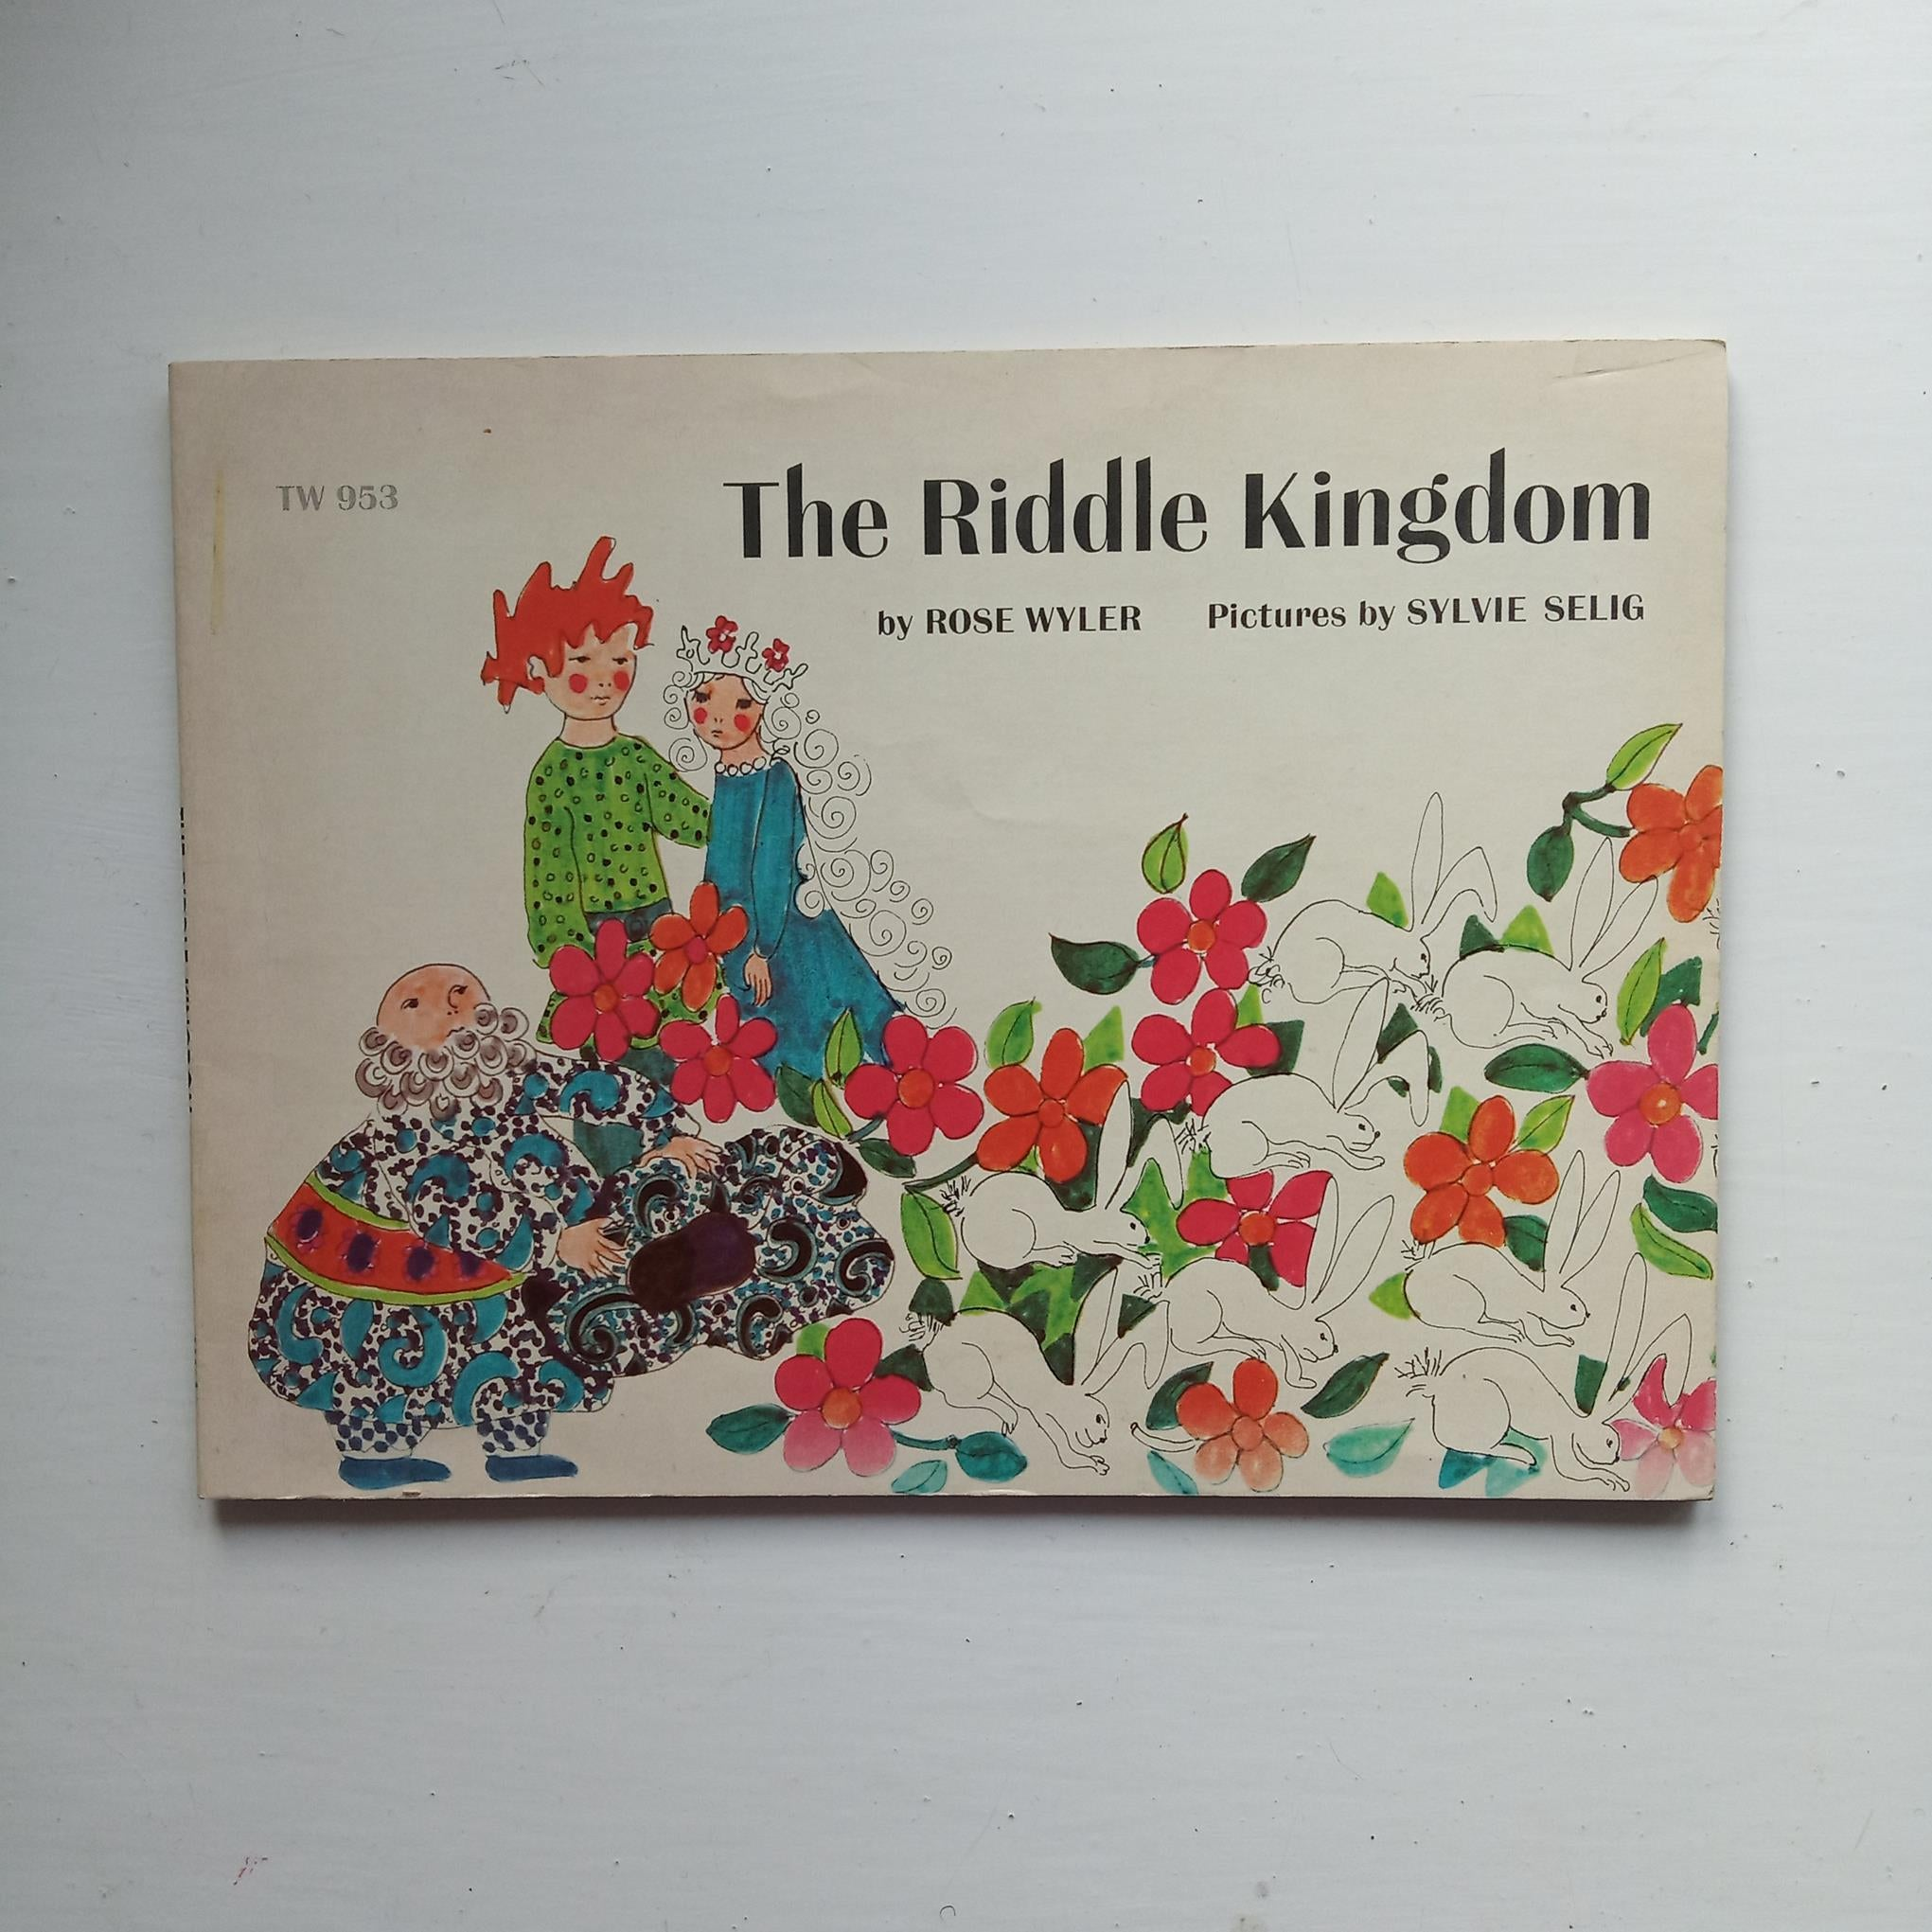 The Riddle Kingdom by Rose Wyler